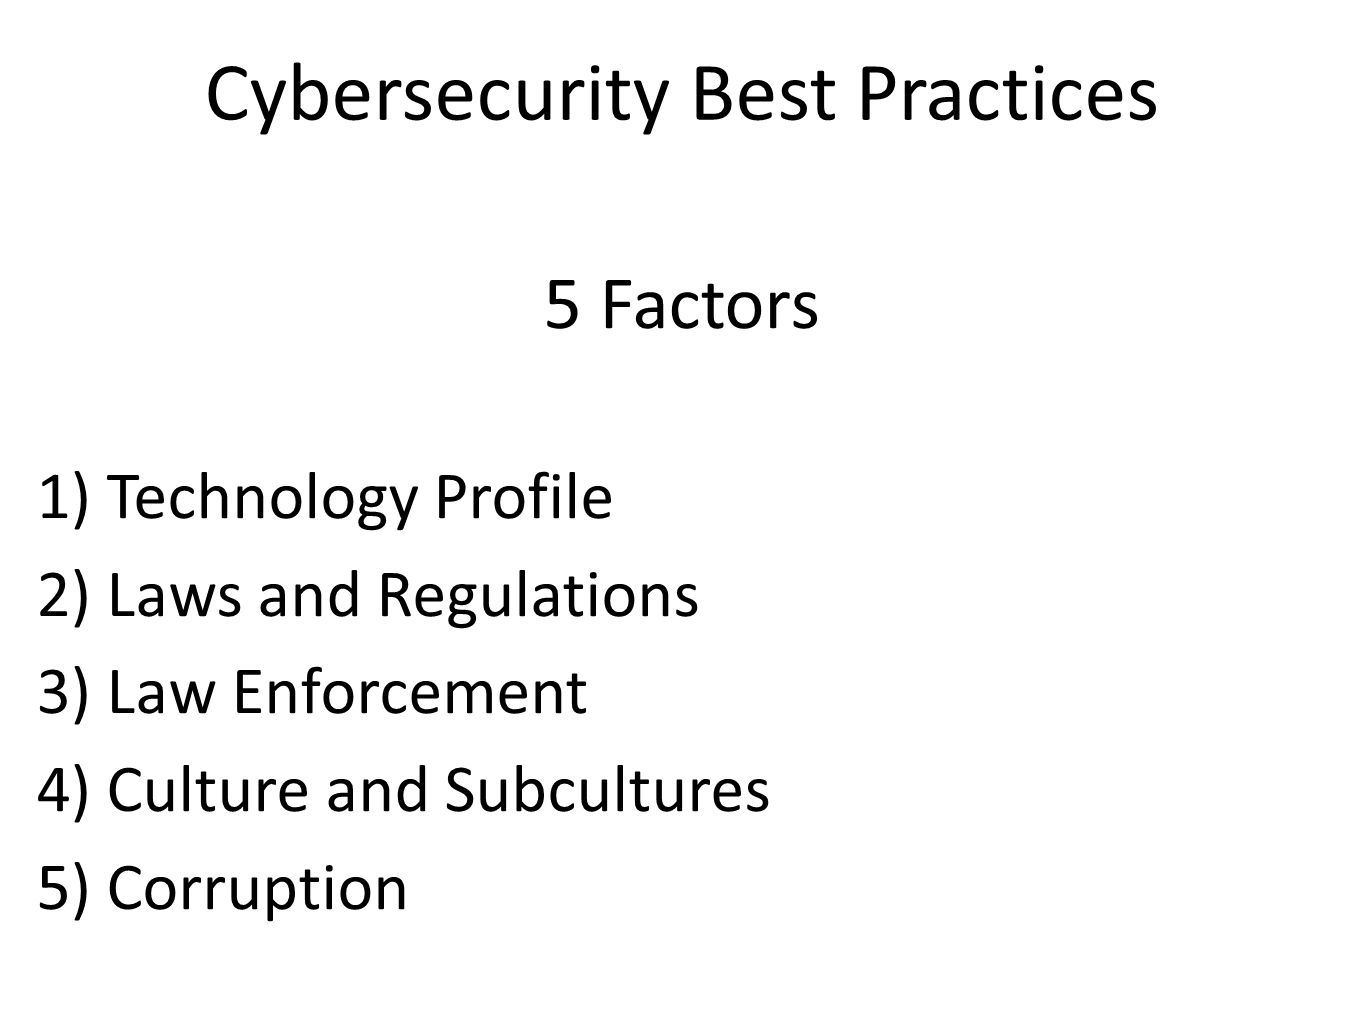 Cybersecurity Best Practices 5 Factors 1) Technology Profile 2) Laws and Regulations 3) Law Enforcement 4) Culture and Subcultures 5) Corruption